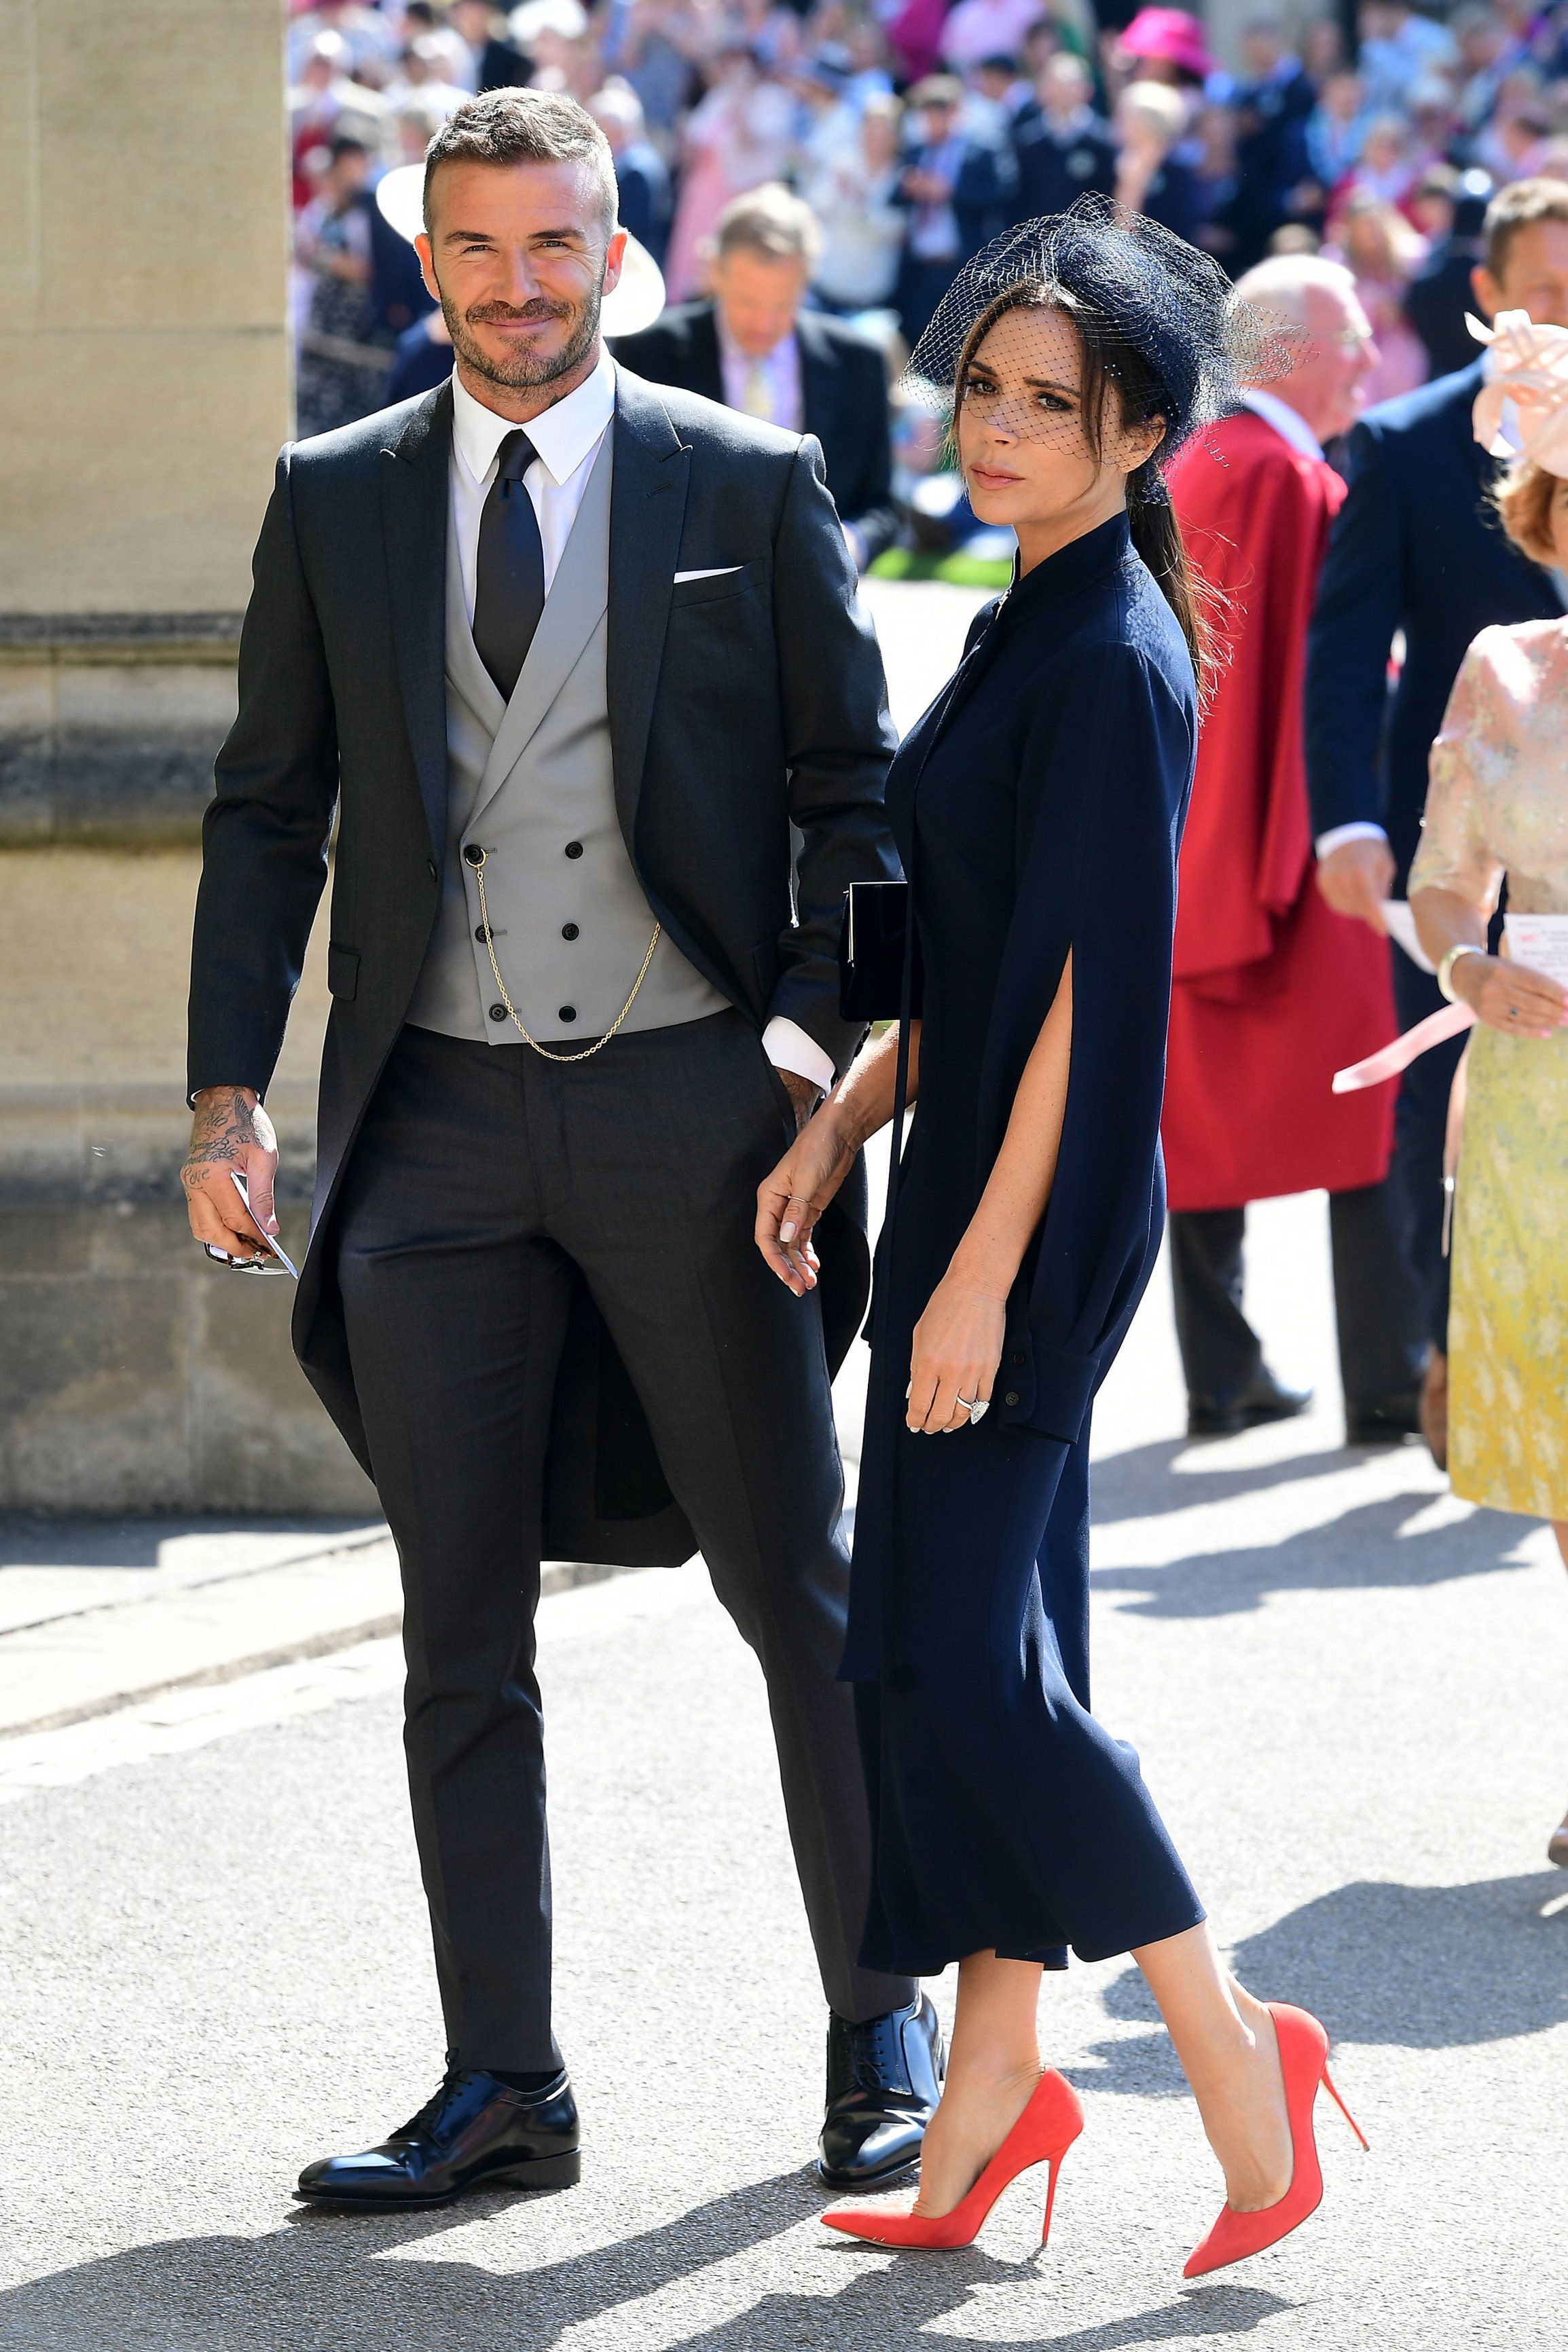 The Beckhams Are Selling Their Royal Wedding Outfits To Support Manchester Bombing